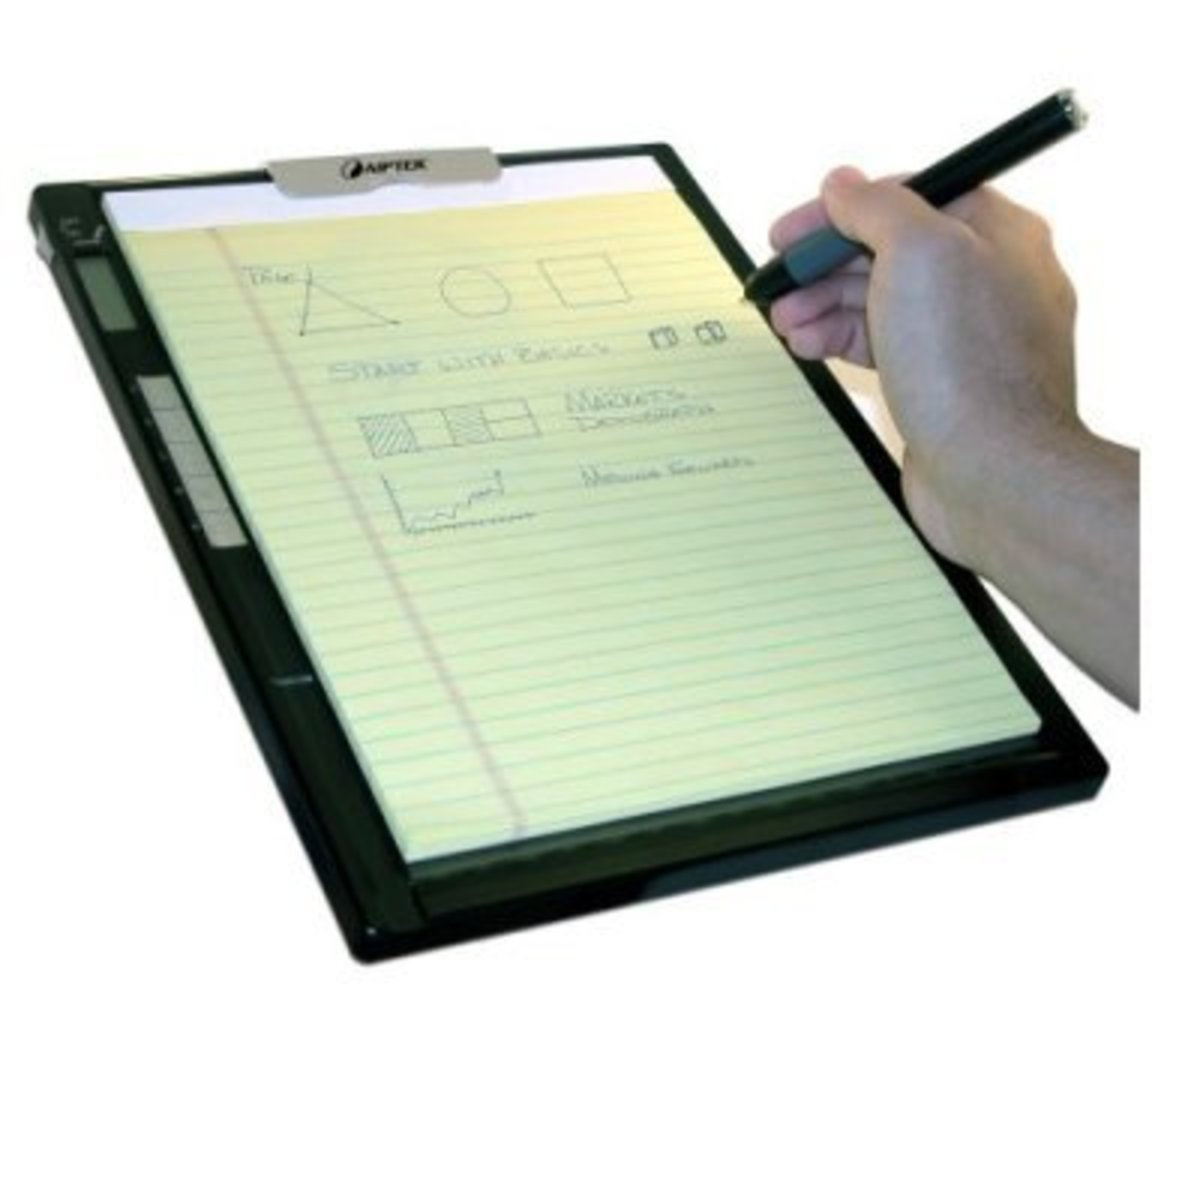 Digital Notepads How Do They Compare To Tablet Pcs